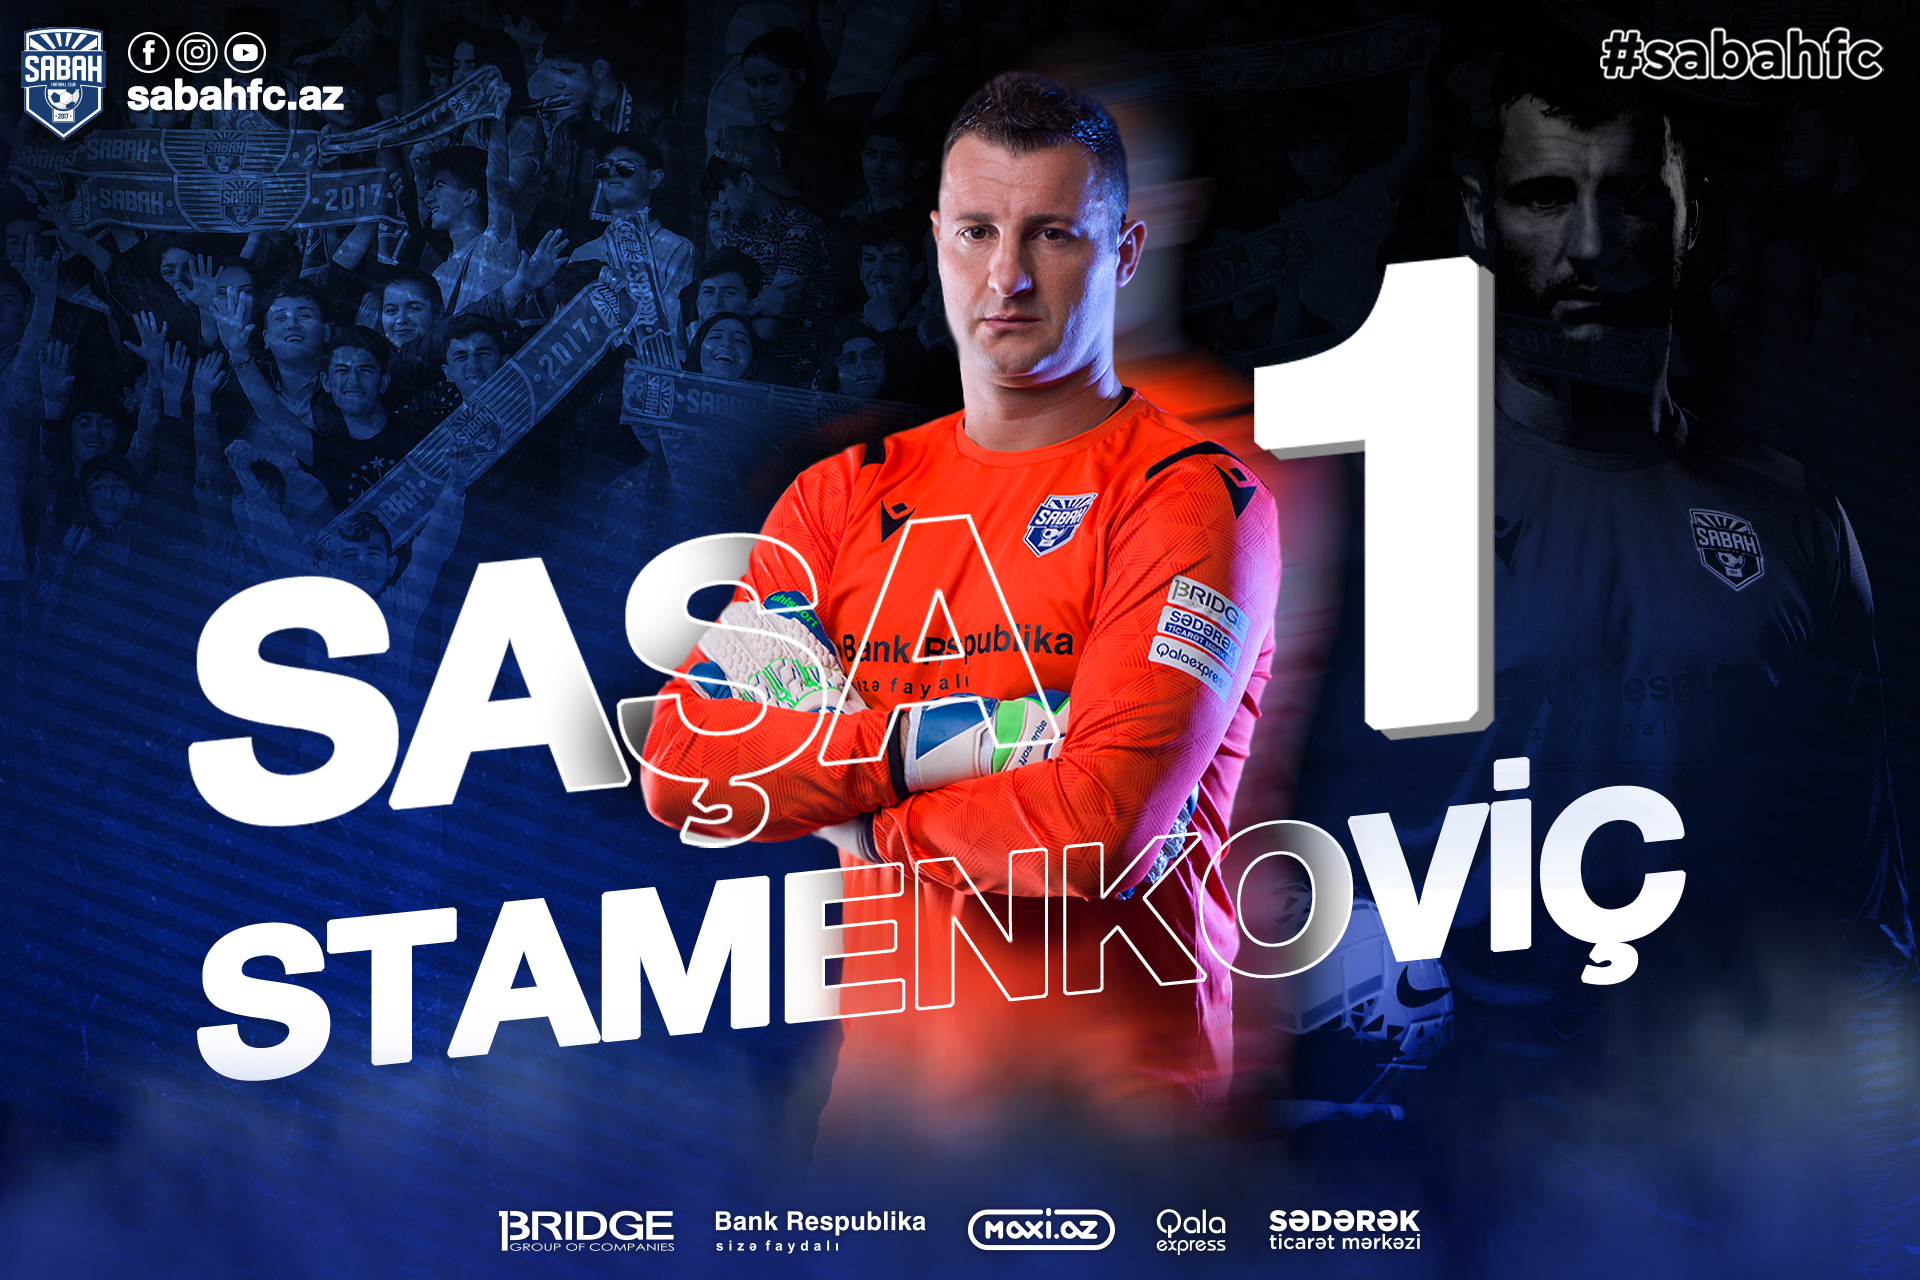 We extended contract with Sasa Stamenkovic!